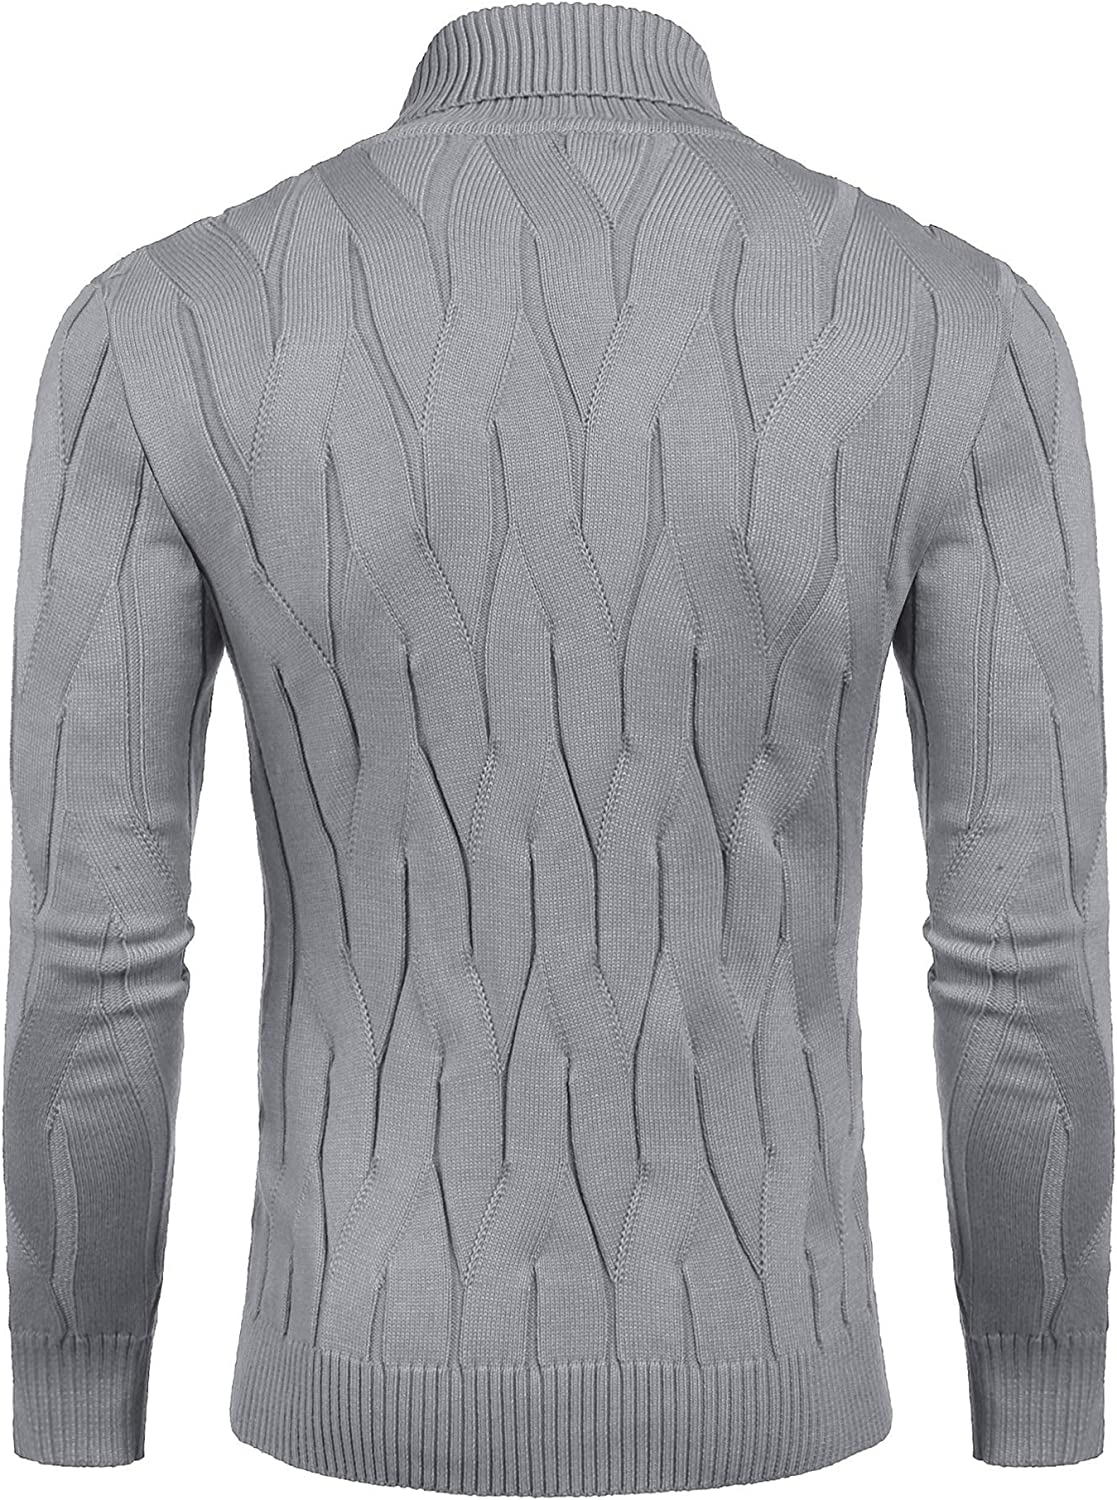 COOFANDY Men's Slim Fit Turtleneck Sweater Casual Knitted Pullover Sweaters